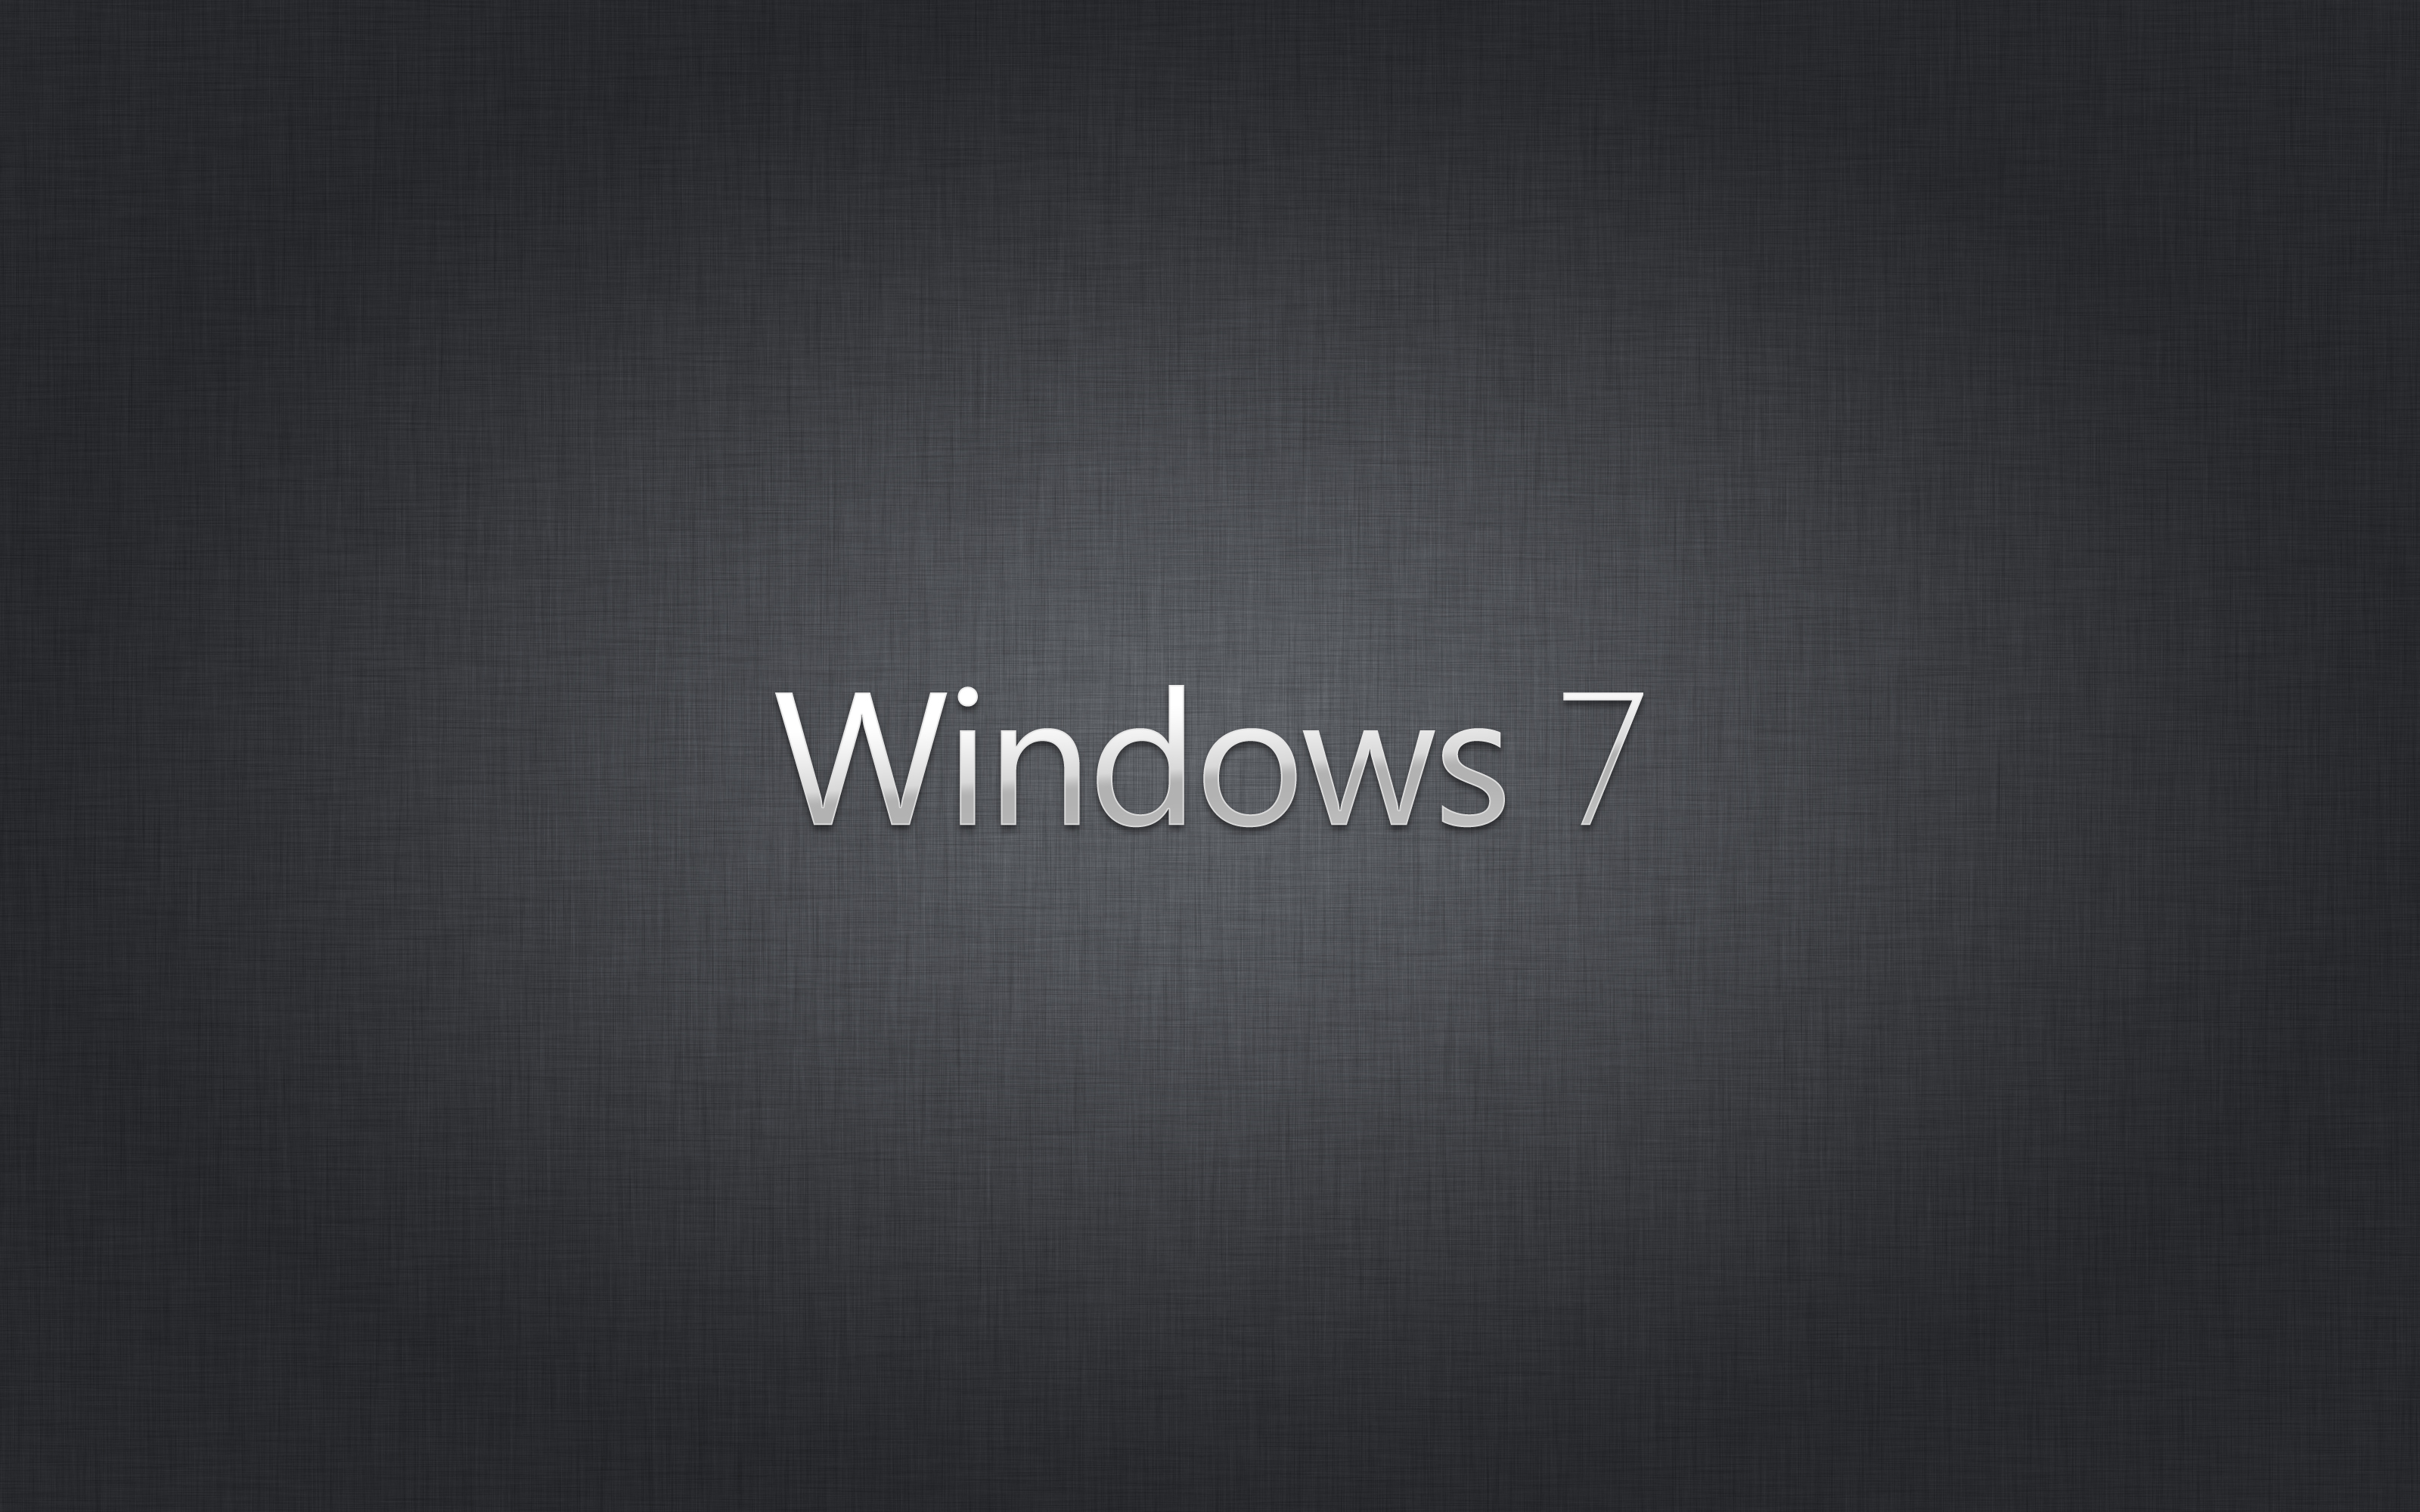 Windows 7 Wallpaper Pro submited images 3200x2000